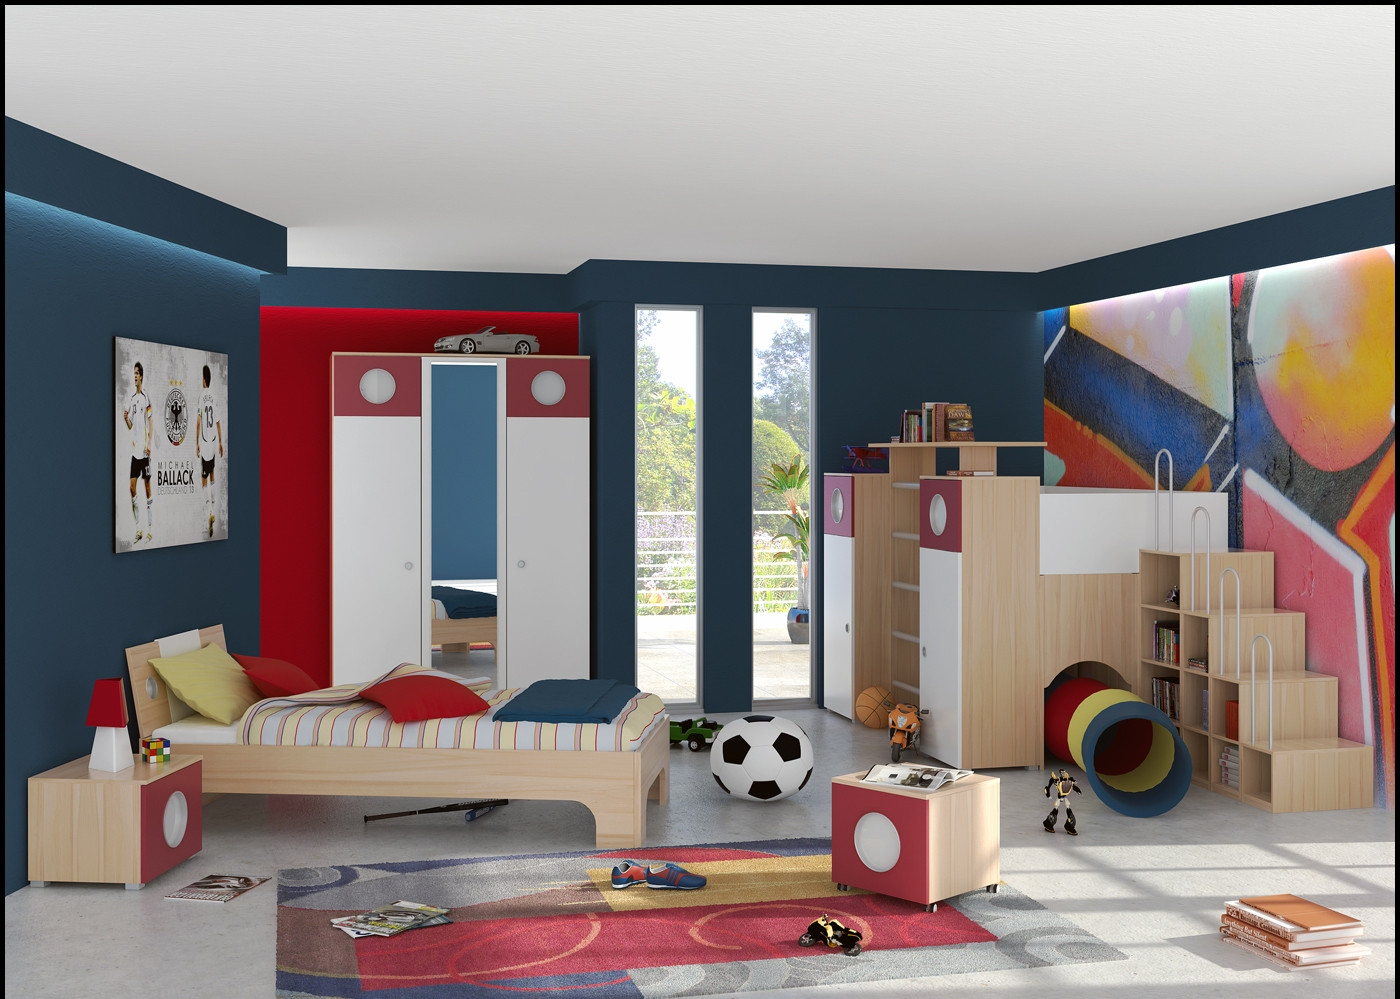 Best ideas about Modern Kids Room . Save or Pin s Various Modern Kids Room Inspirations beautiful Now.